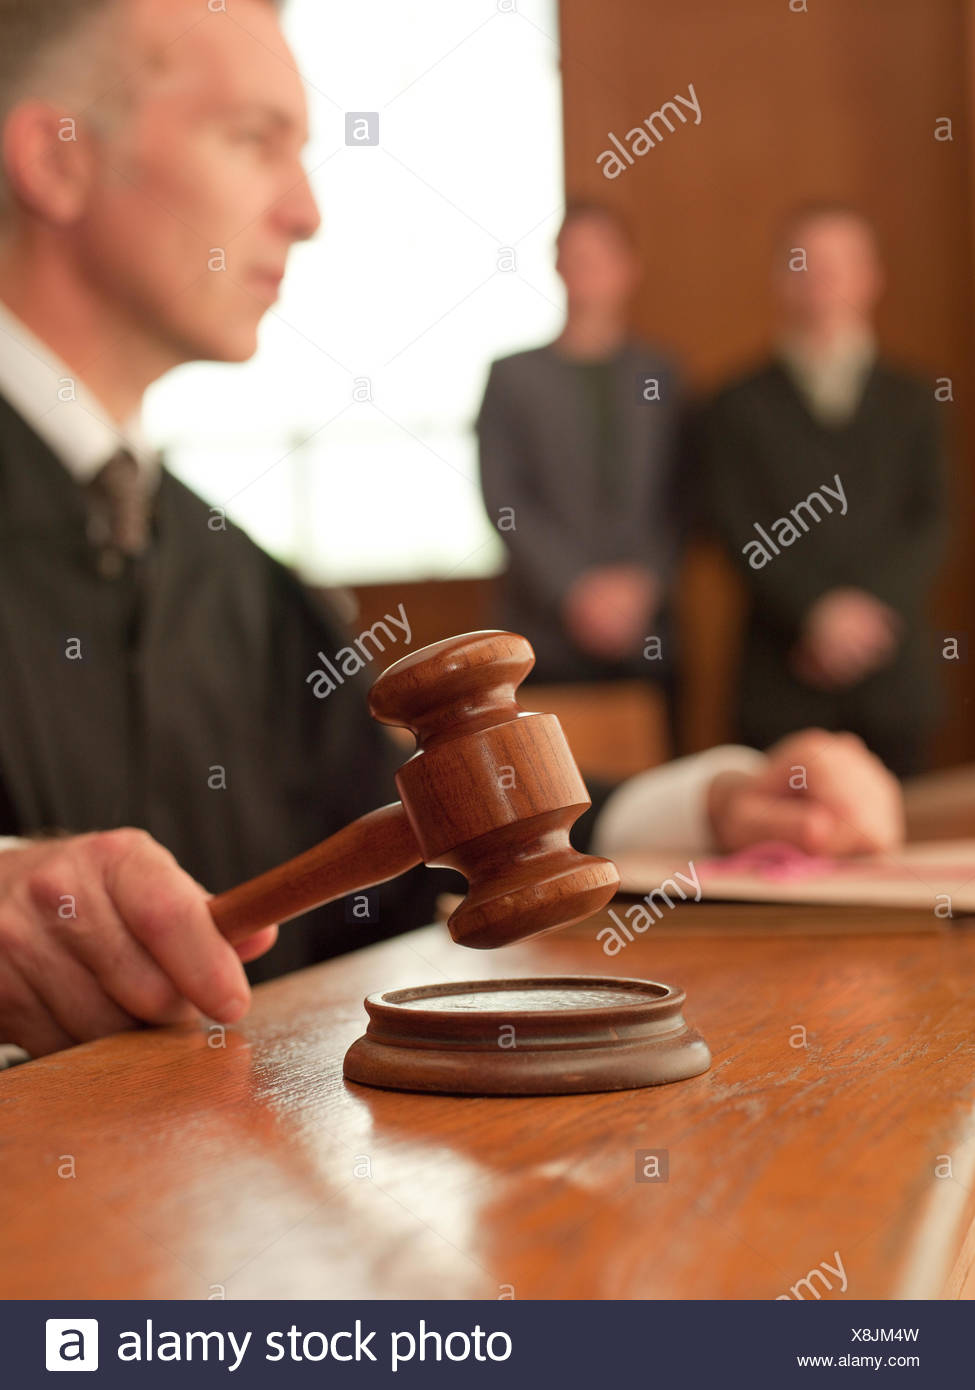 Judge holding gavel in courtroom - Stock Image